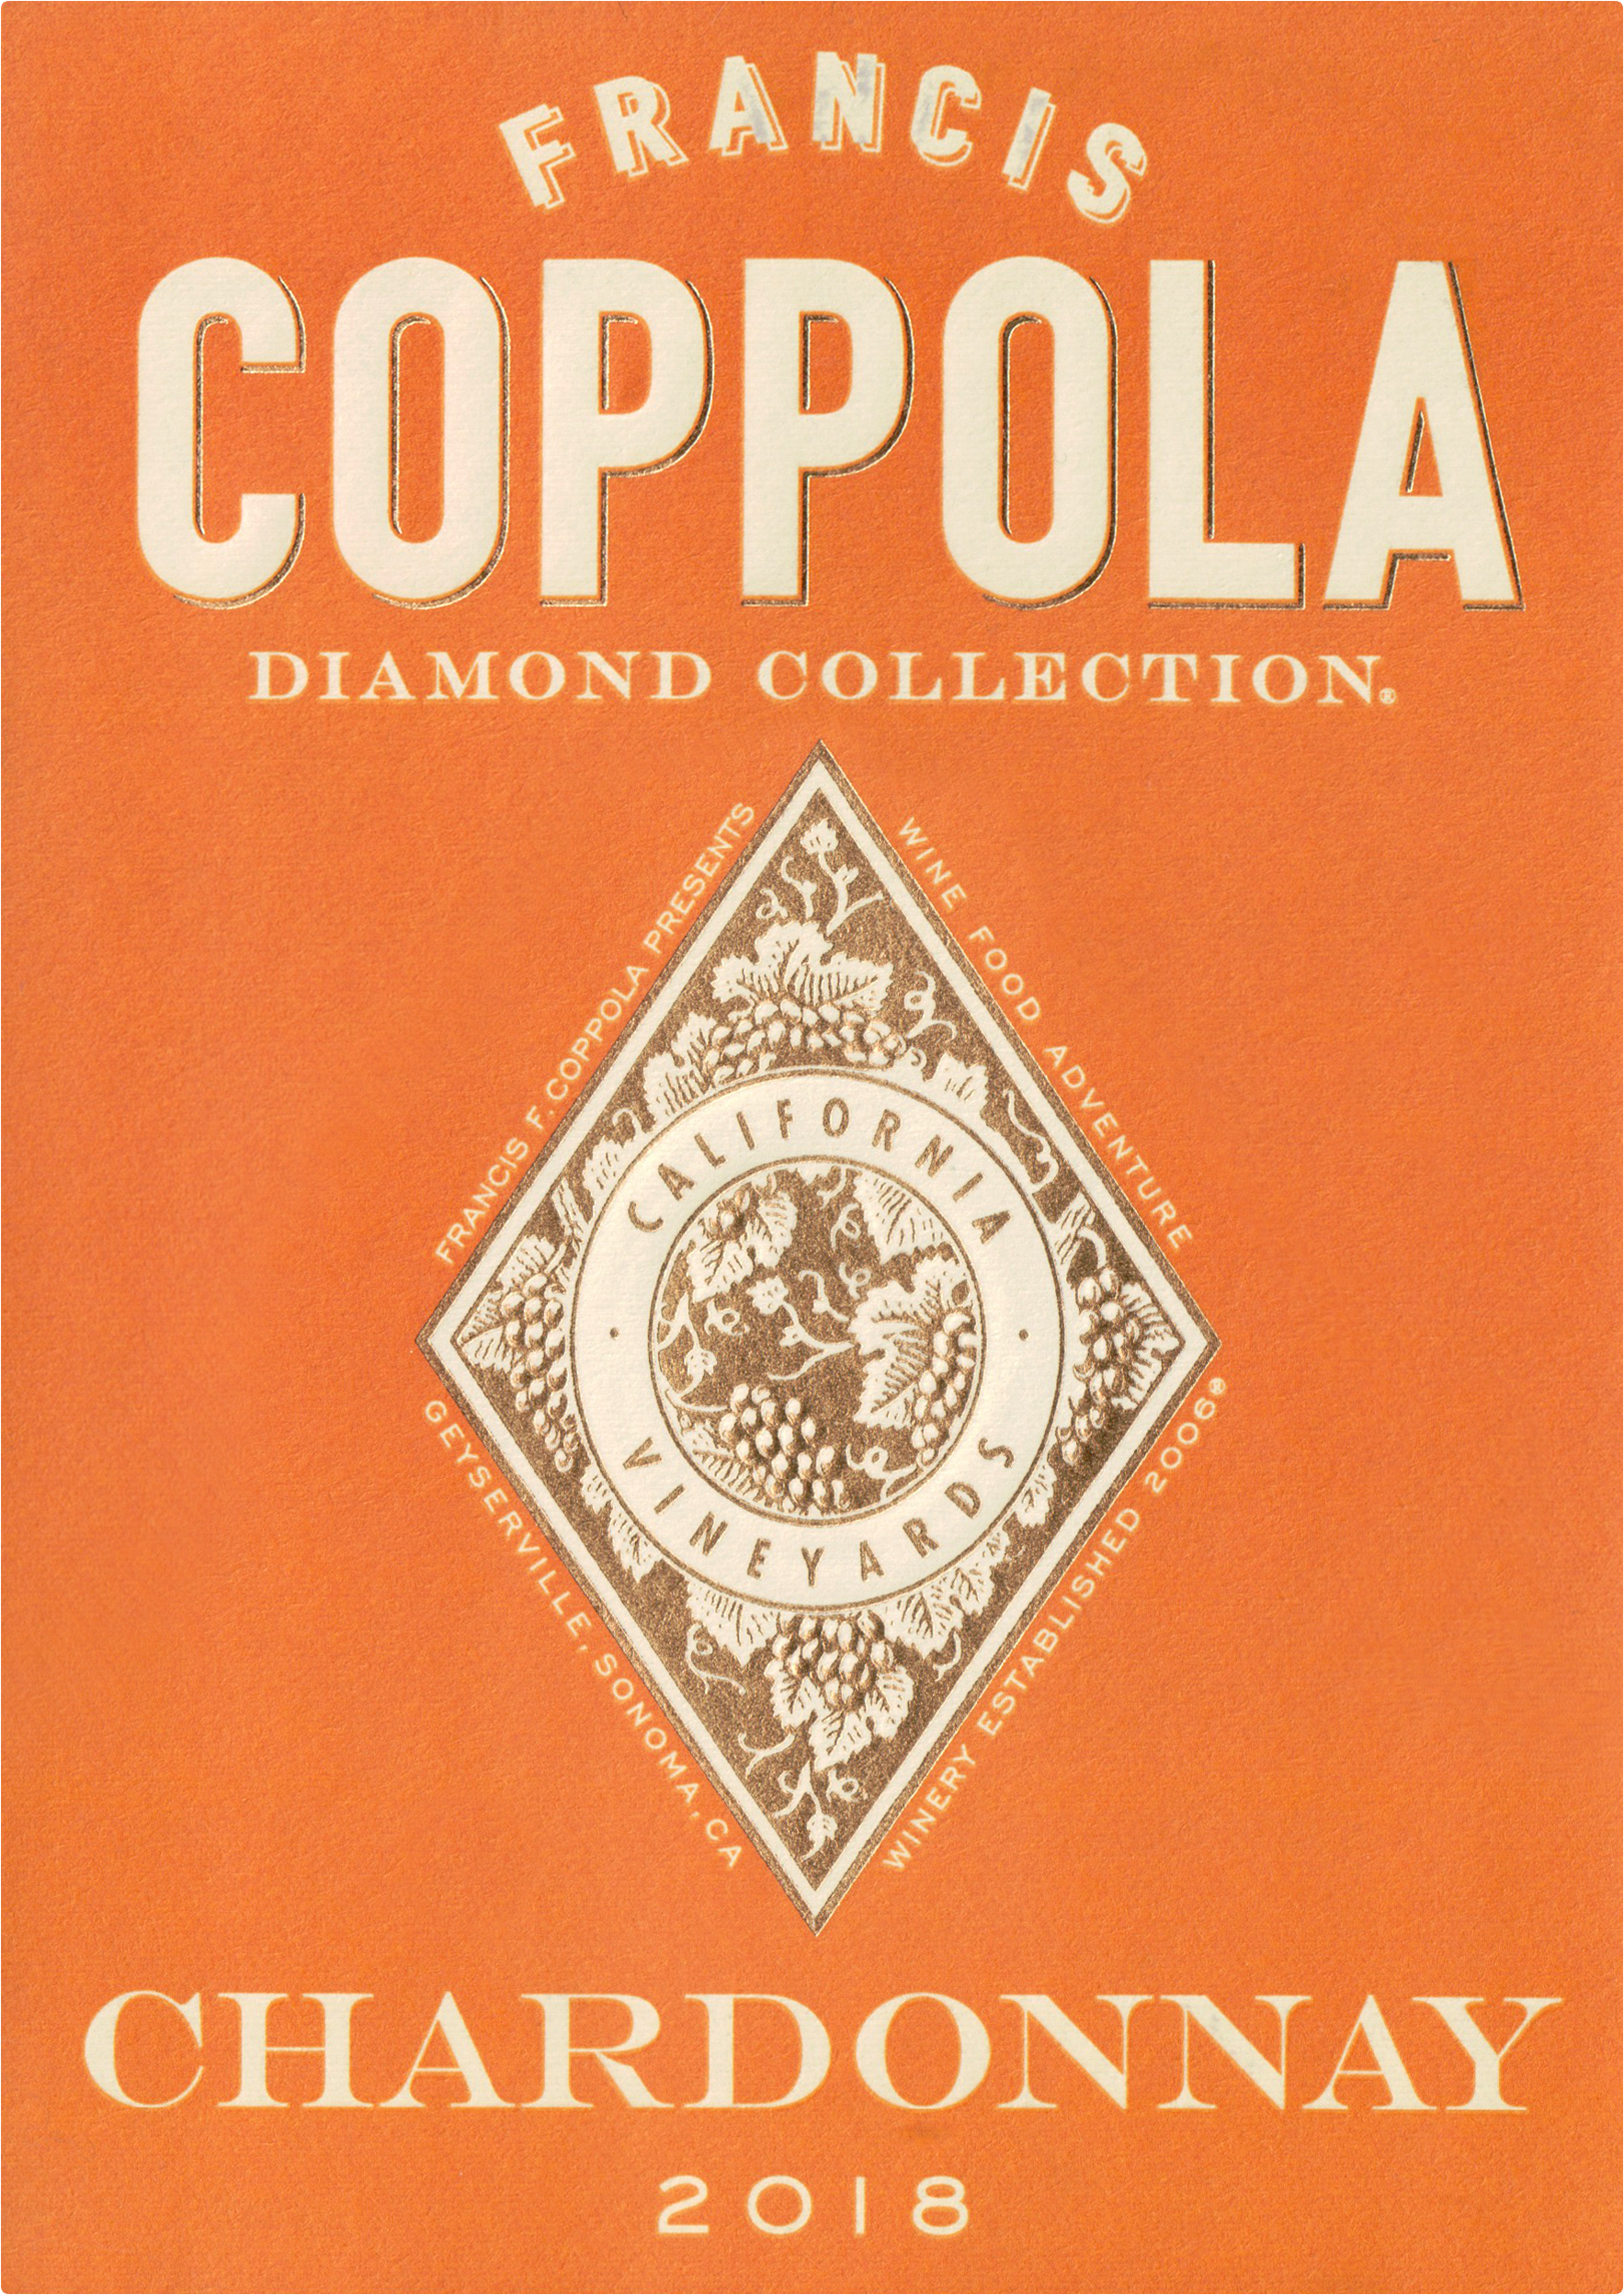 Coppola Diamond Chardonnay 2018